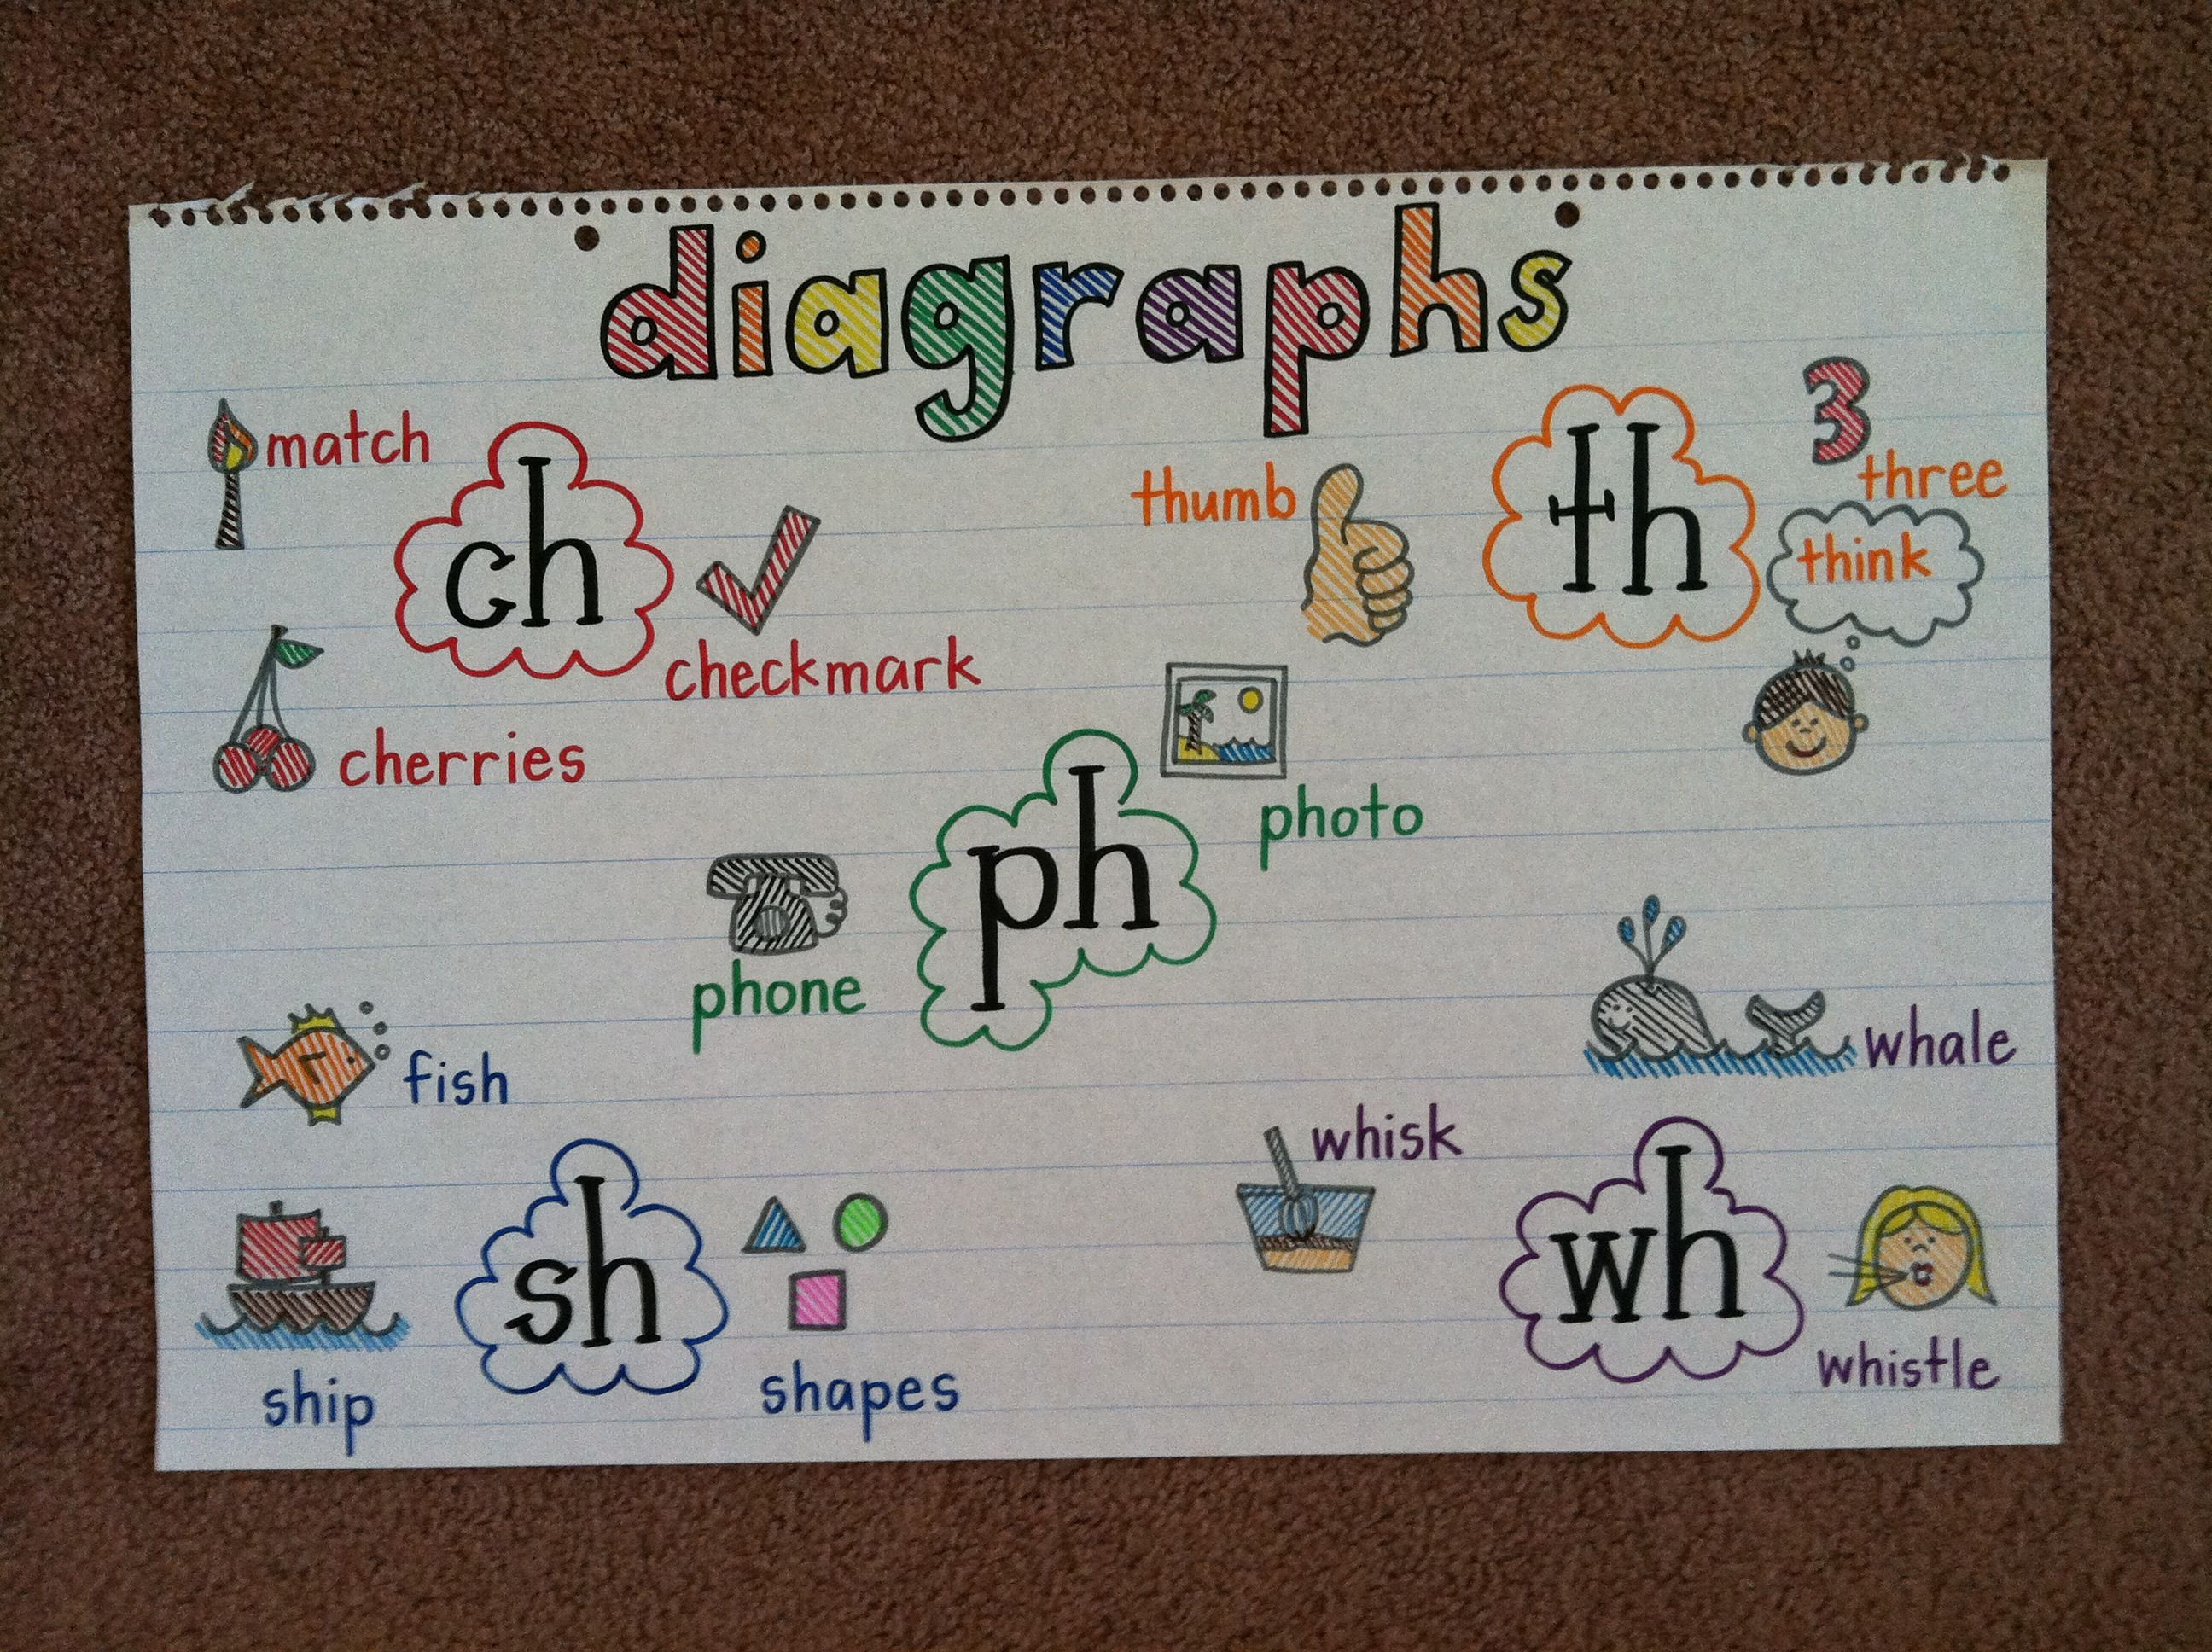 hight resolution of Diargaph Gh Phonics Worksheet   Printable Worksheets and Activities for  Teachers